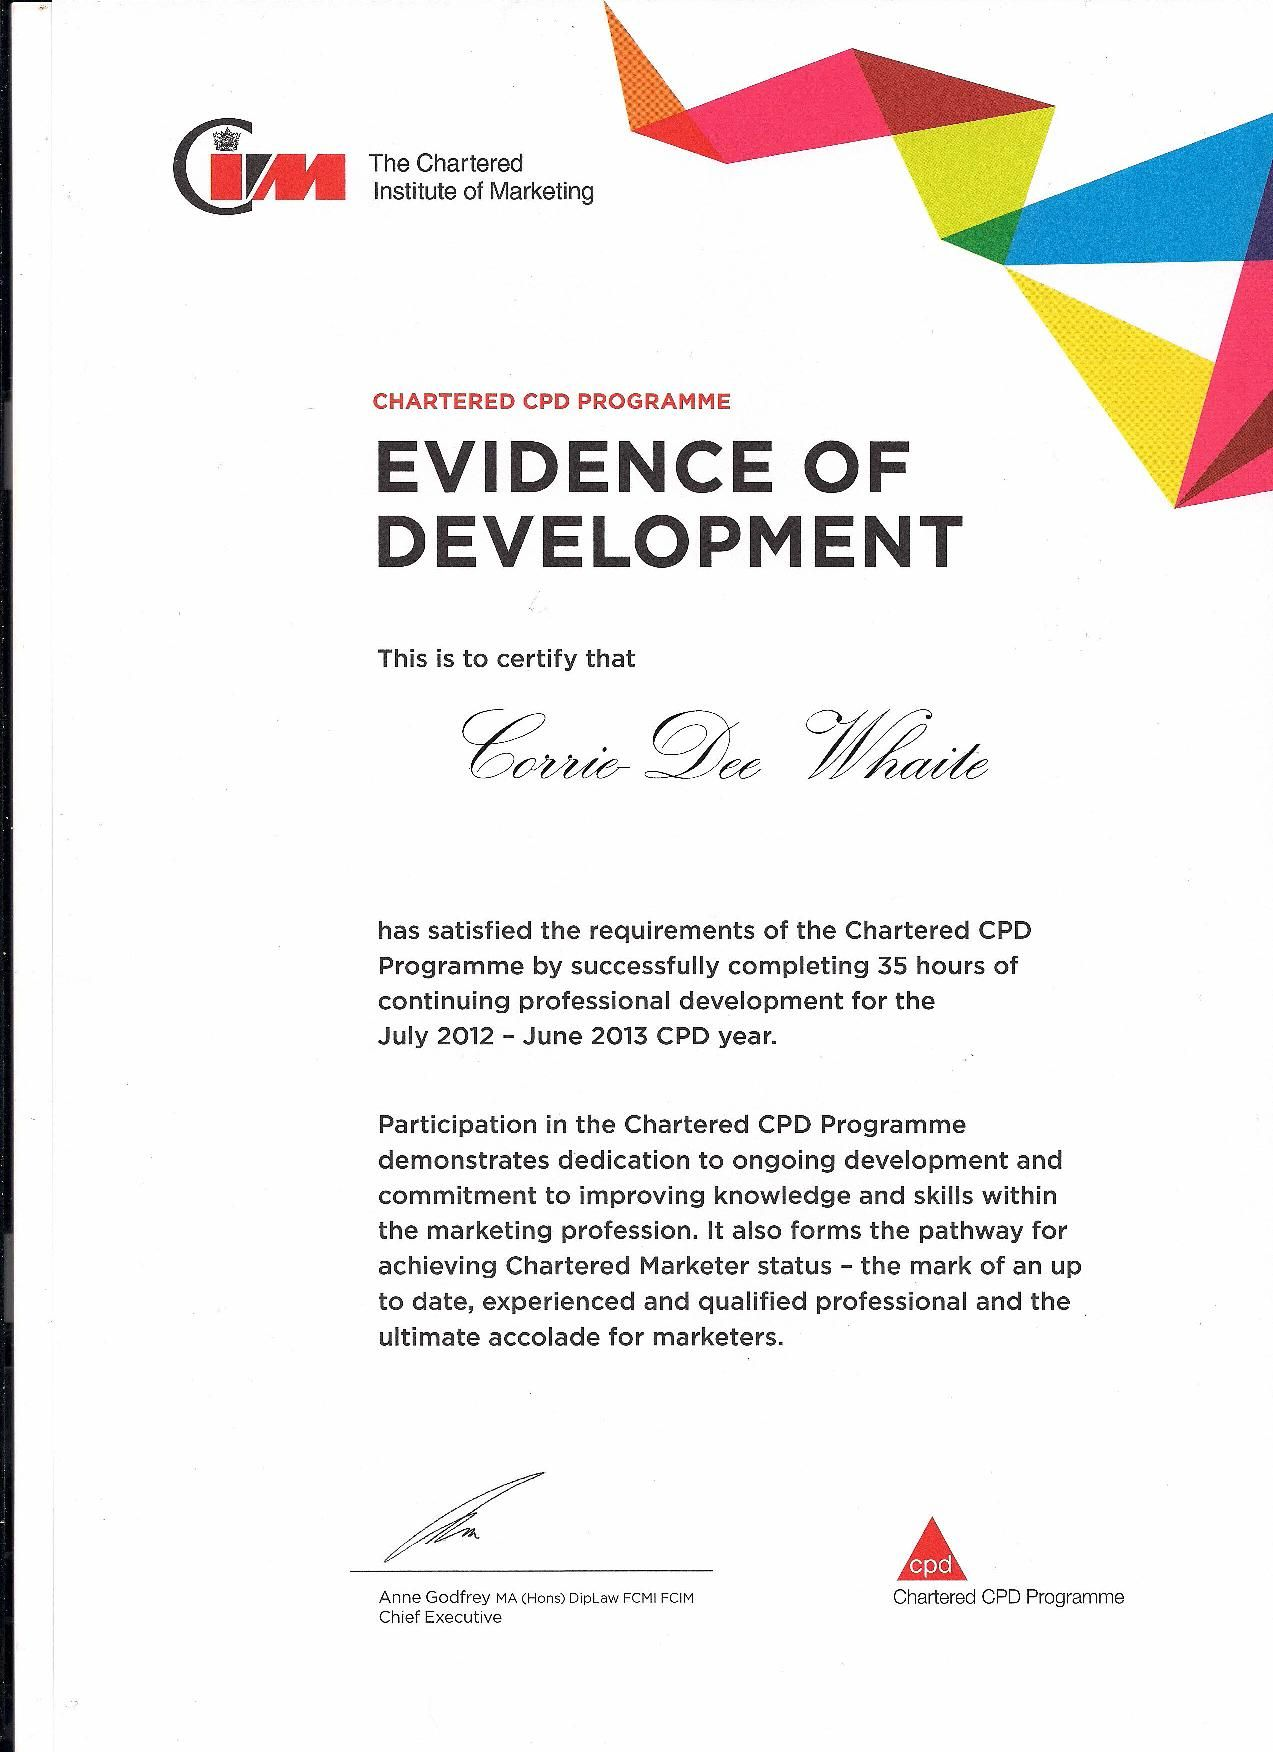 CPD Certificate Of Professional Development From CIM Chartered